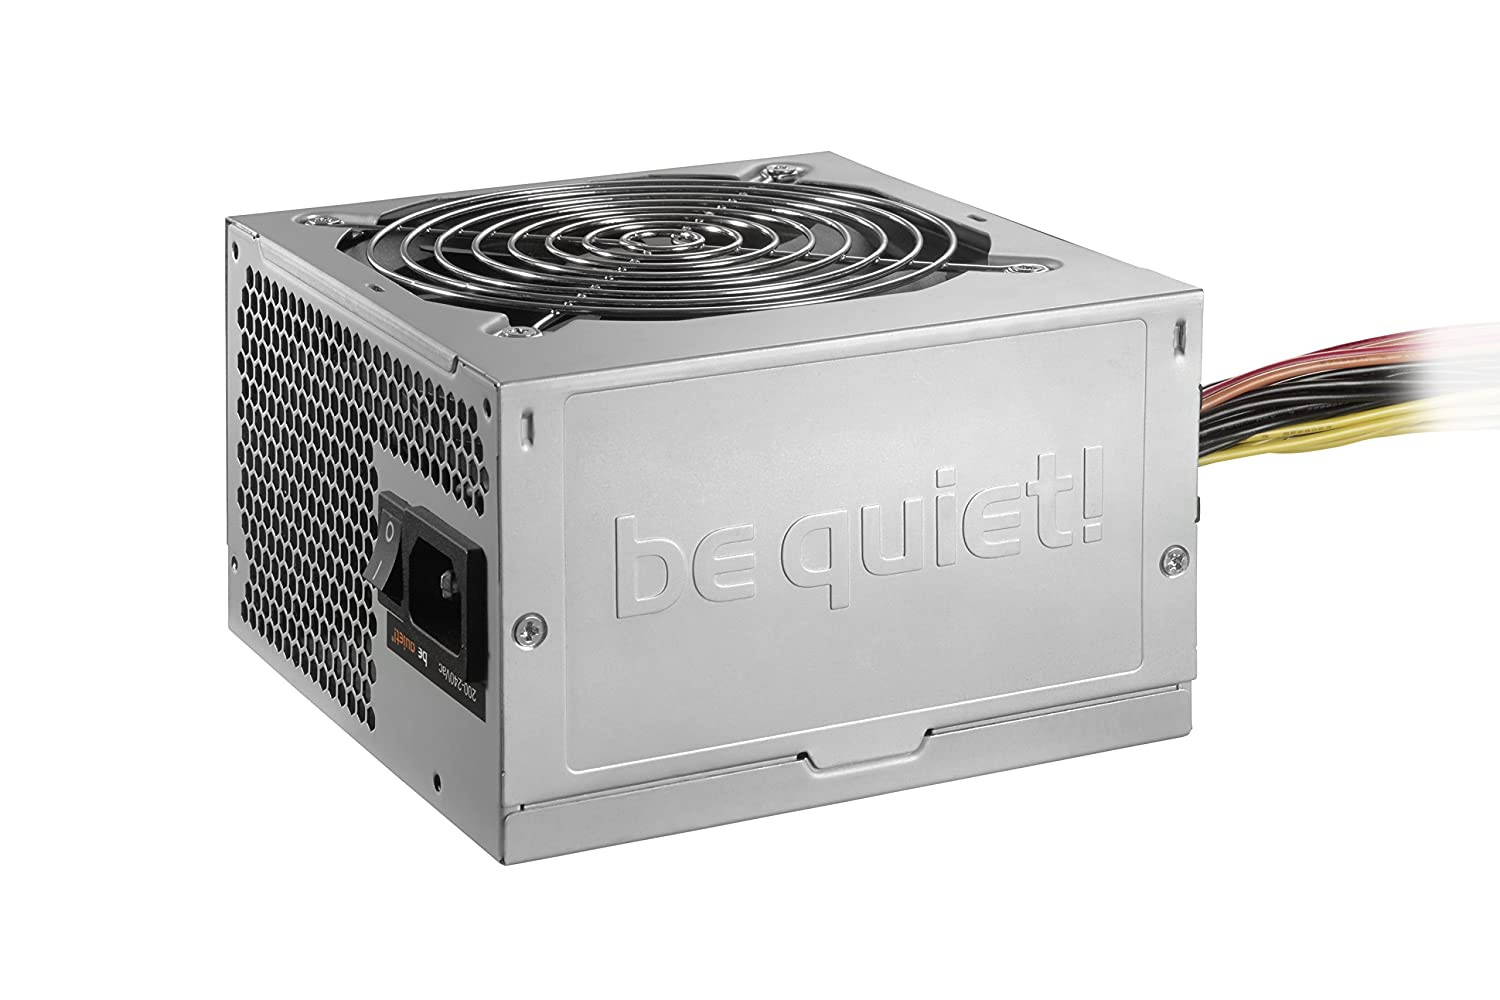 be quiet! BN256 ATX PC Netzteil 300W System Power B8: Amazon.de ...